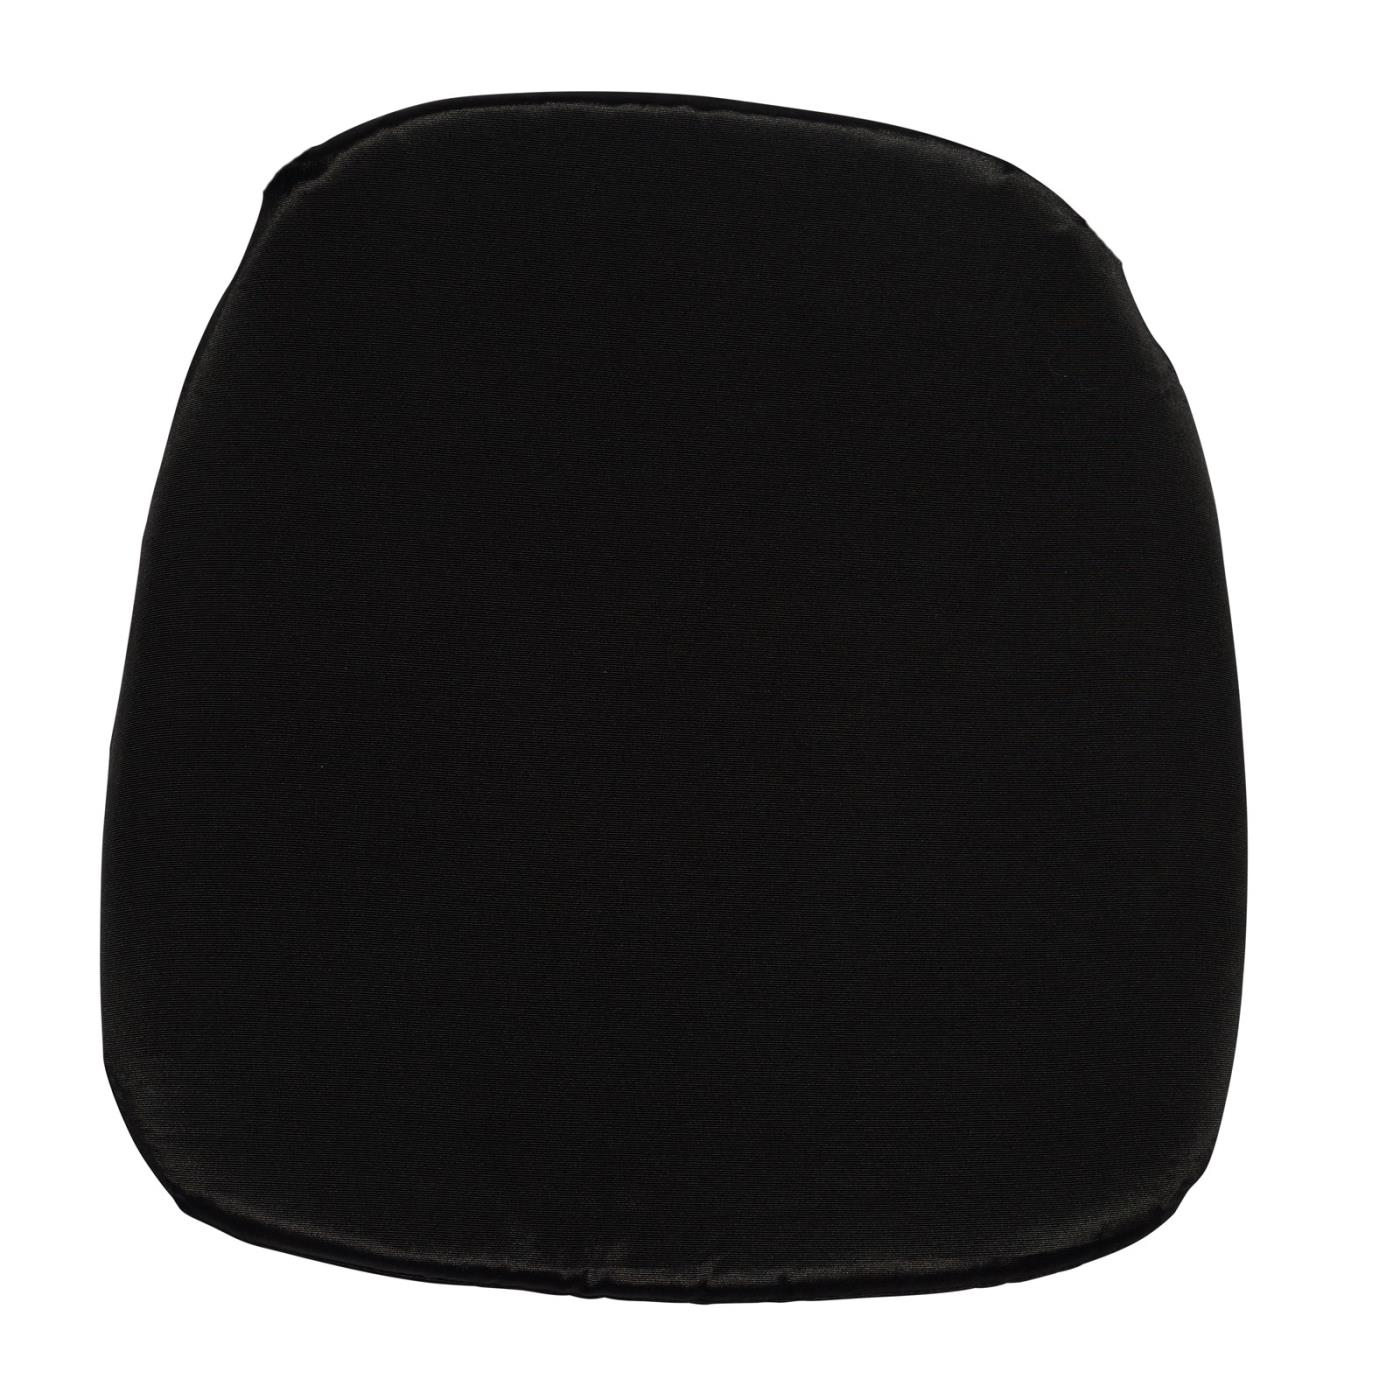 Bengaline Seat Cushion - Black